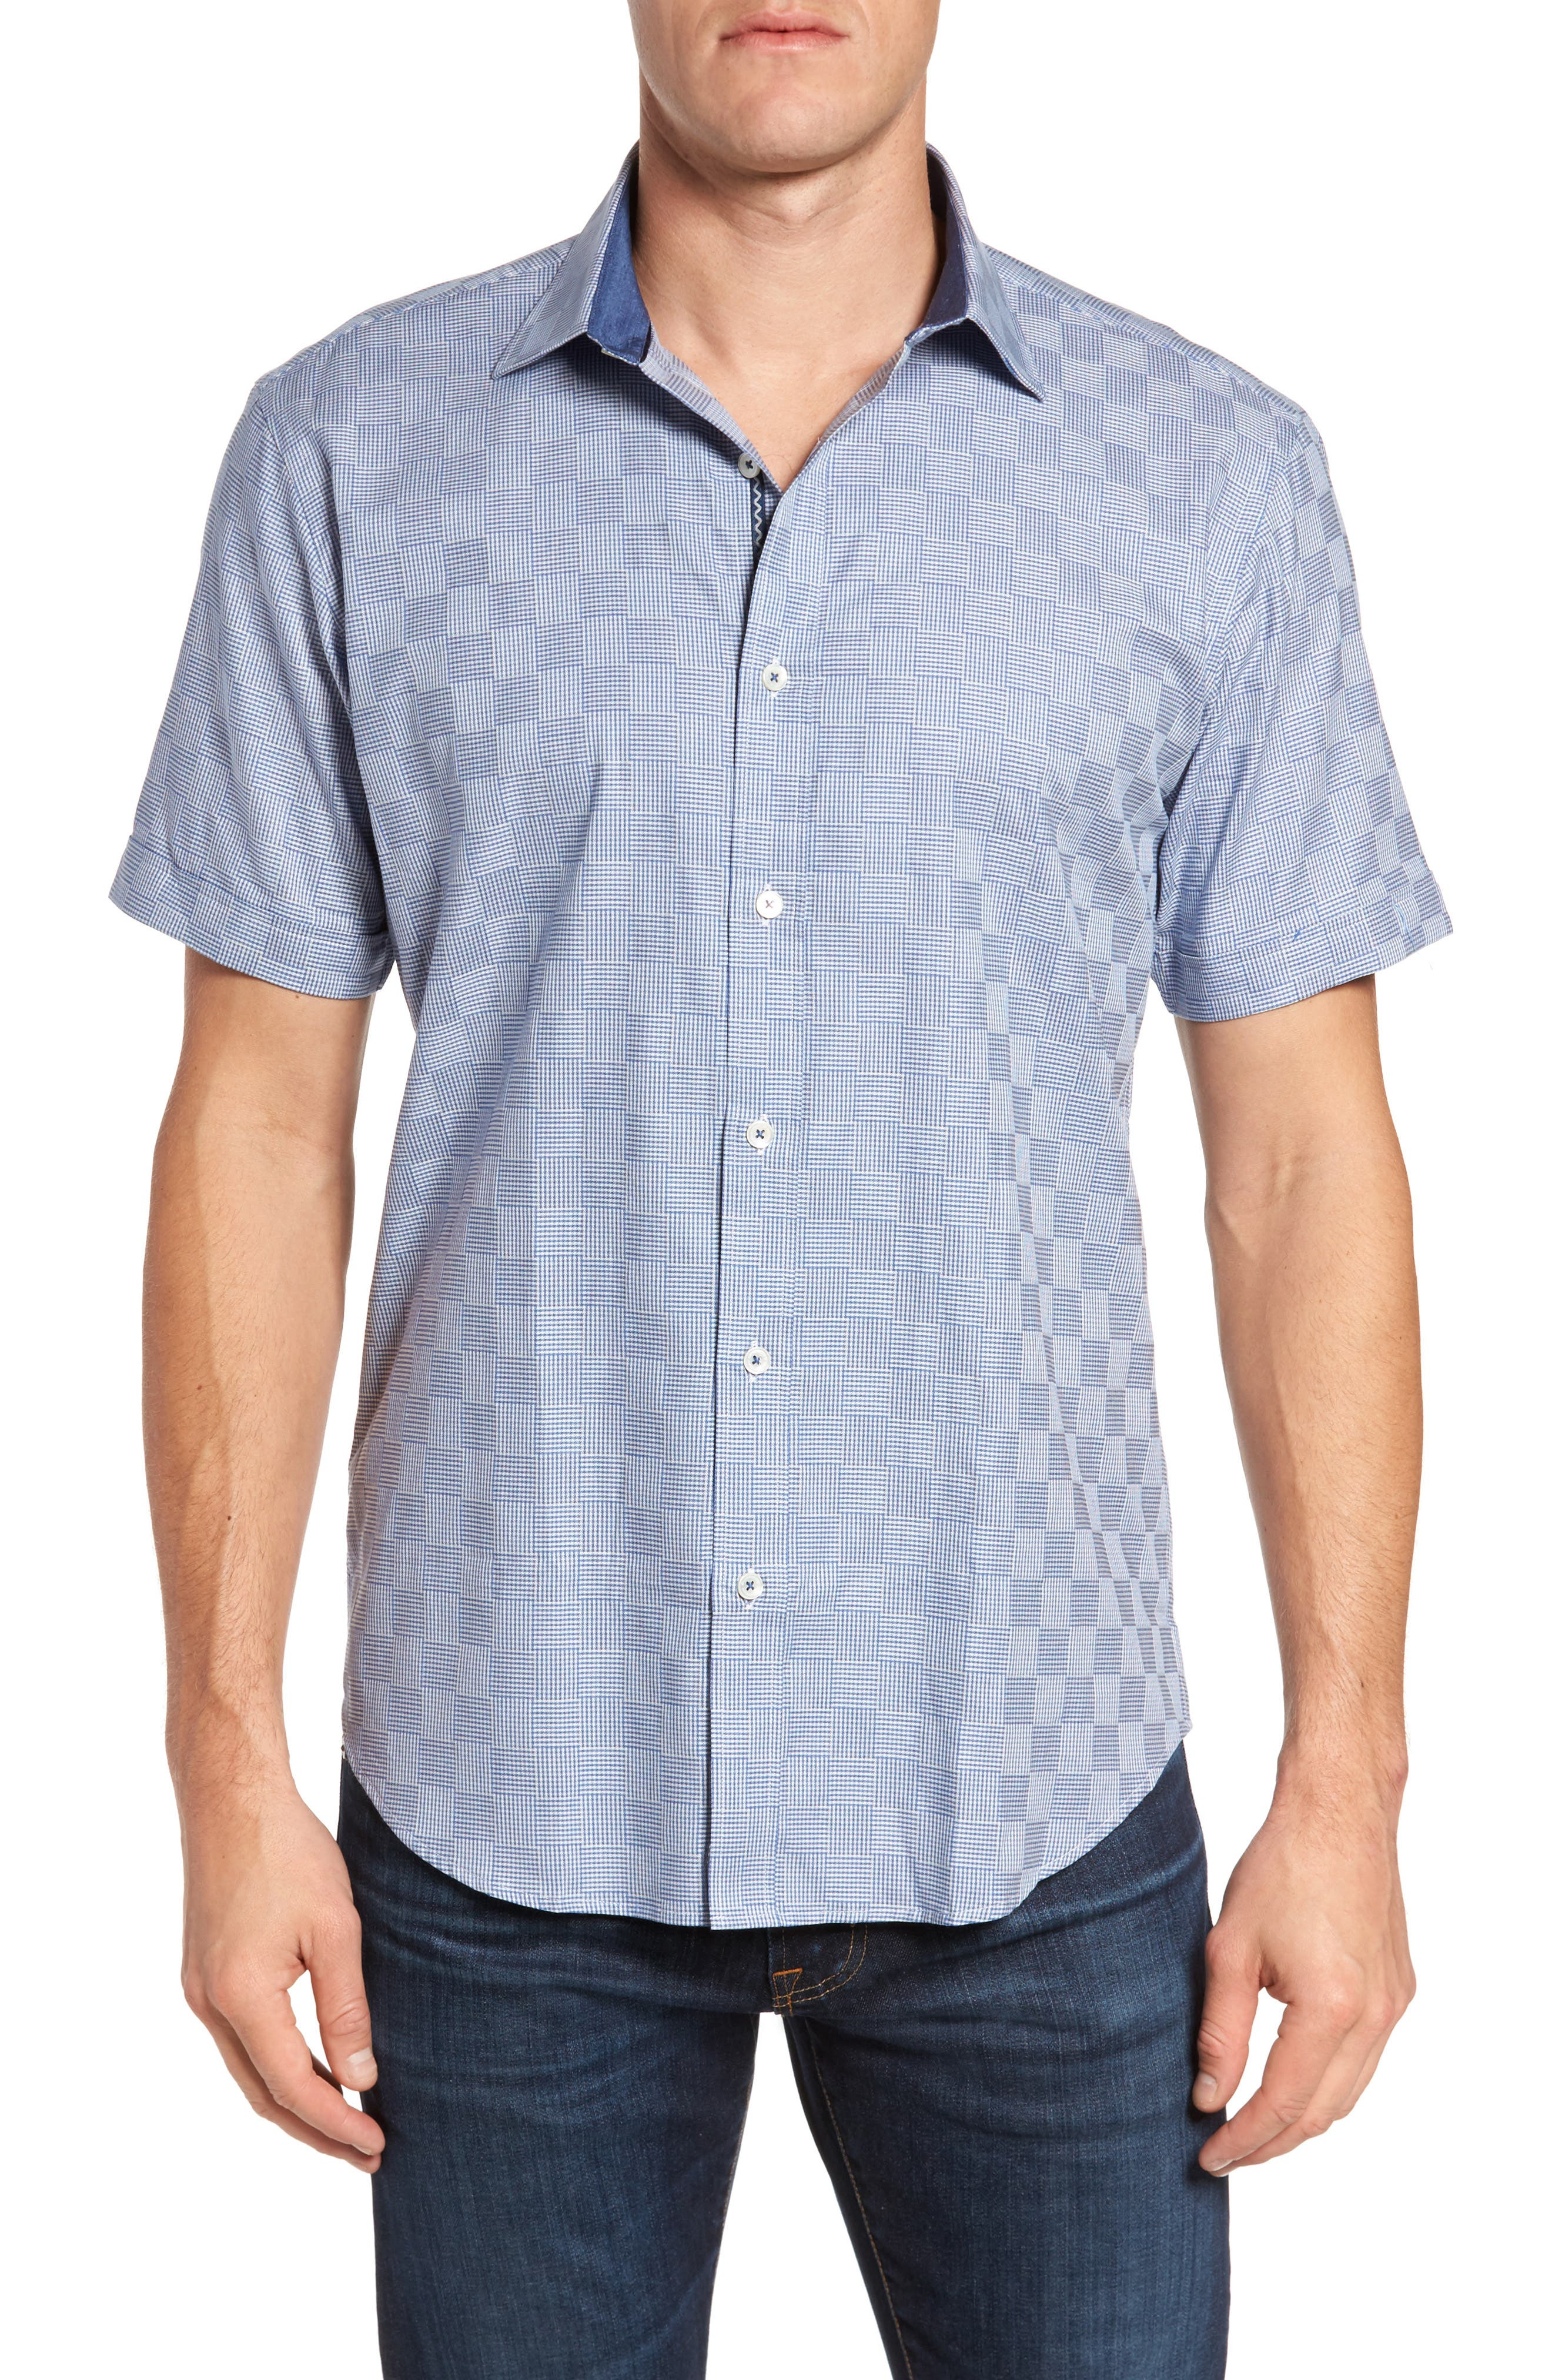 Main Image - Bugatchi Shaped Fit Houndstooth Check Sport Shirt